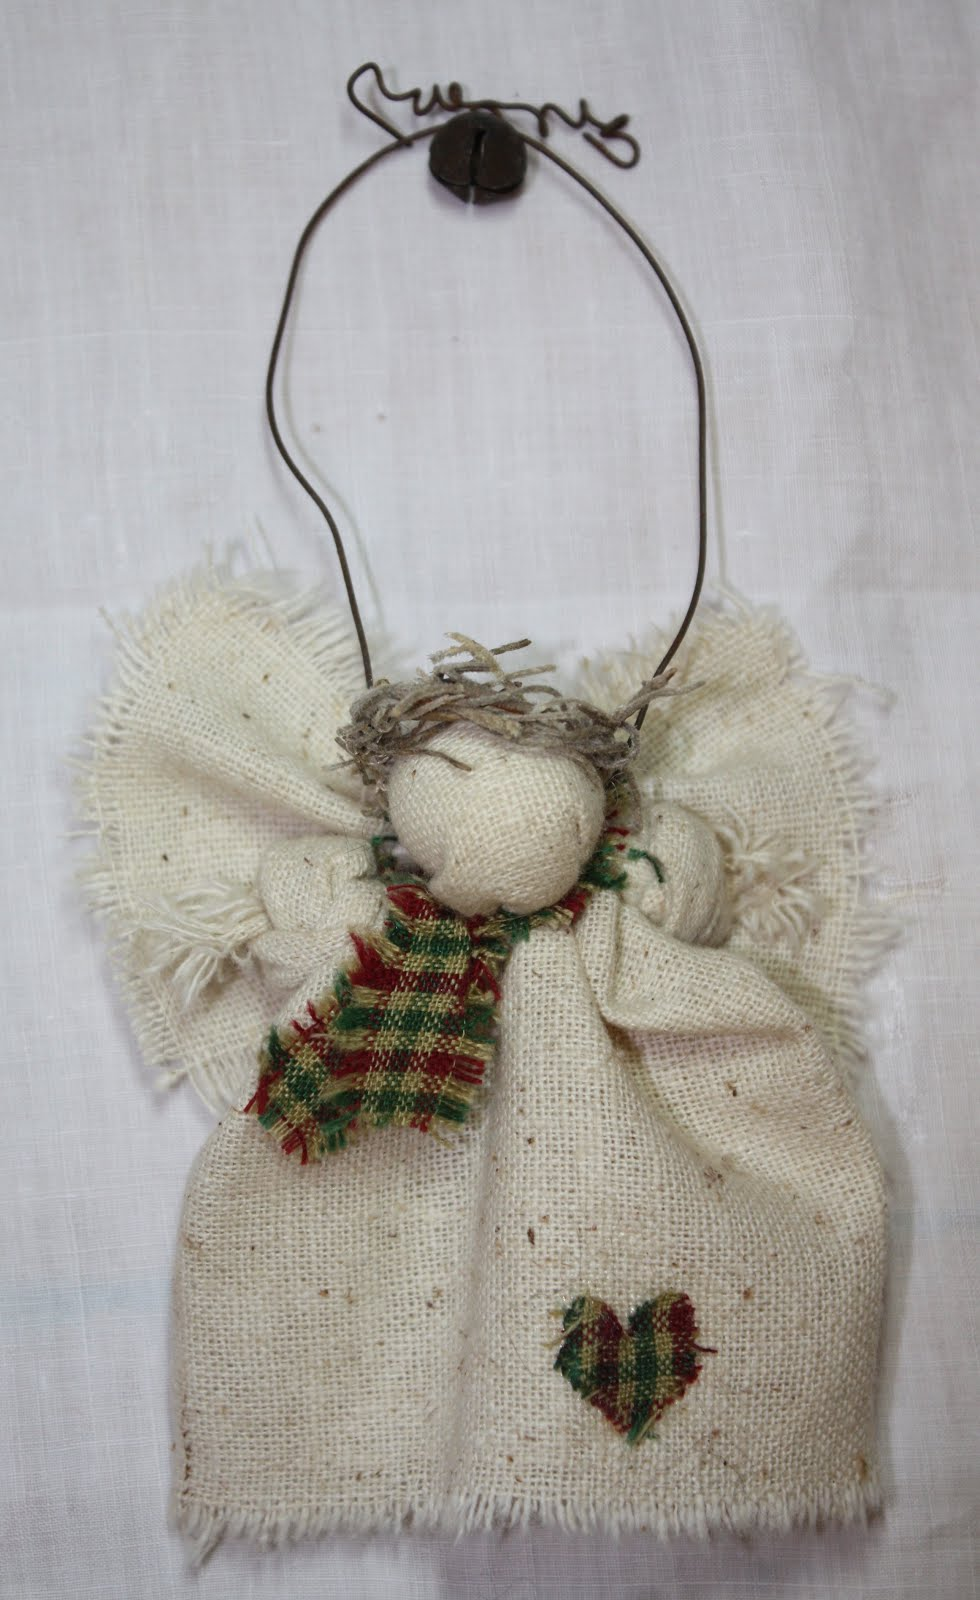 Homemade rustic christmas ornaments - Each Angel Is Made Of Osnaburg Linen With Calico Trim Their Halos Are Made From Either Raffia Or Spanish Moss Each Angel Has A Primitive And Rustic Hanger